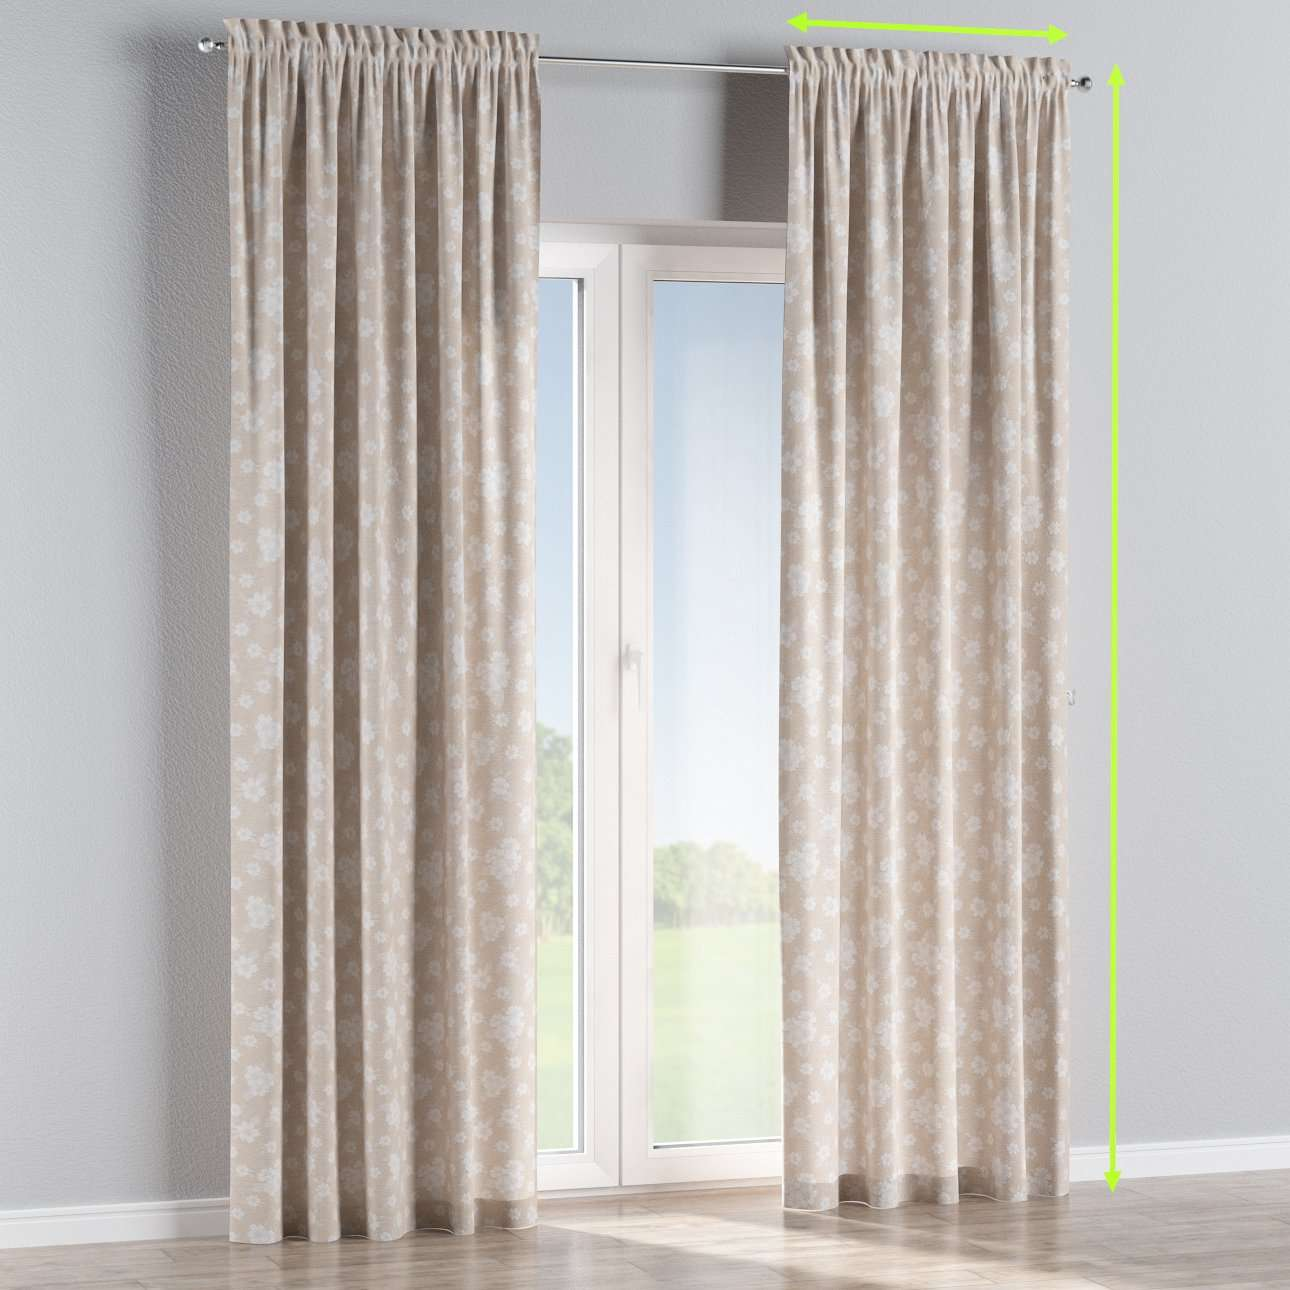 Slot and frill lined curtains in collection Rustica, fabric: 138-26